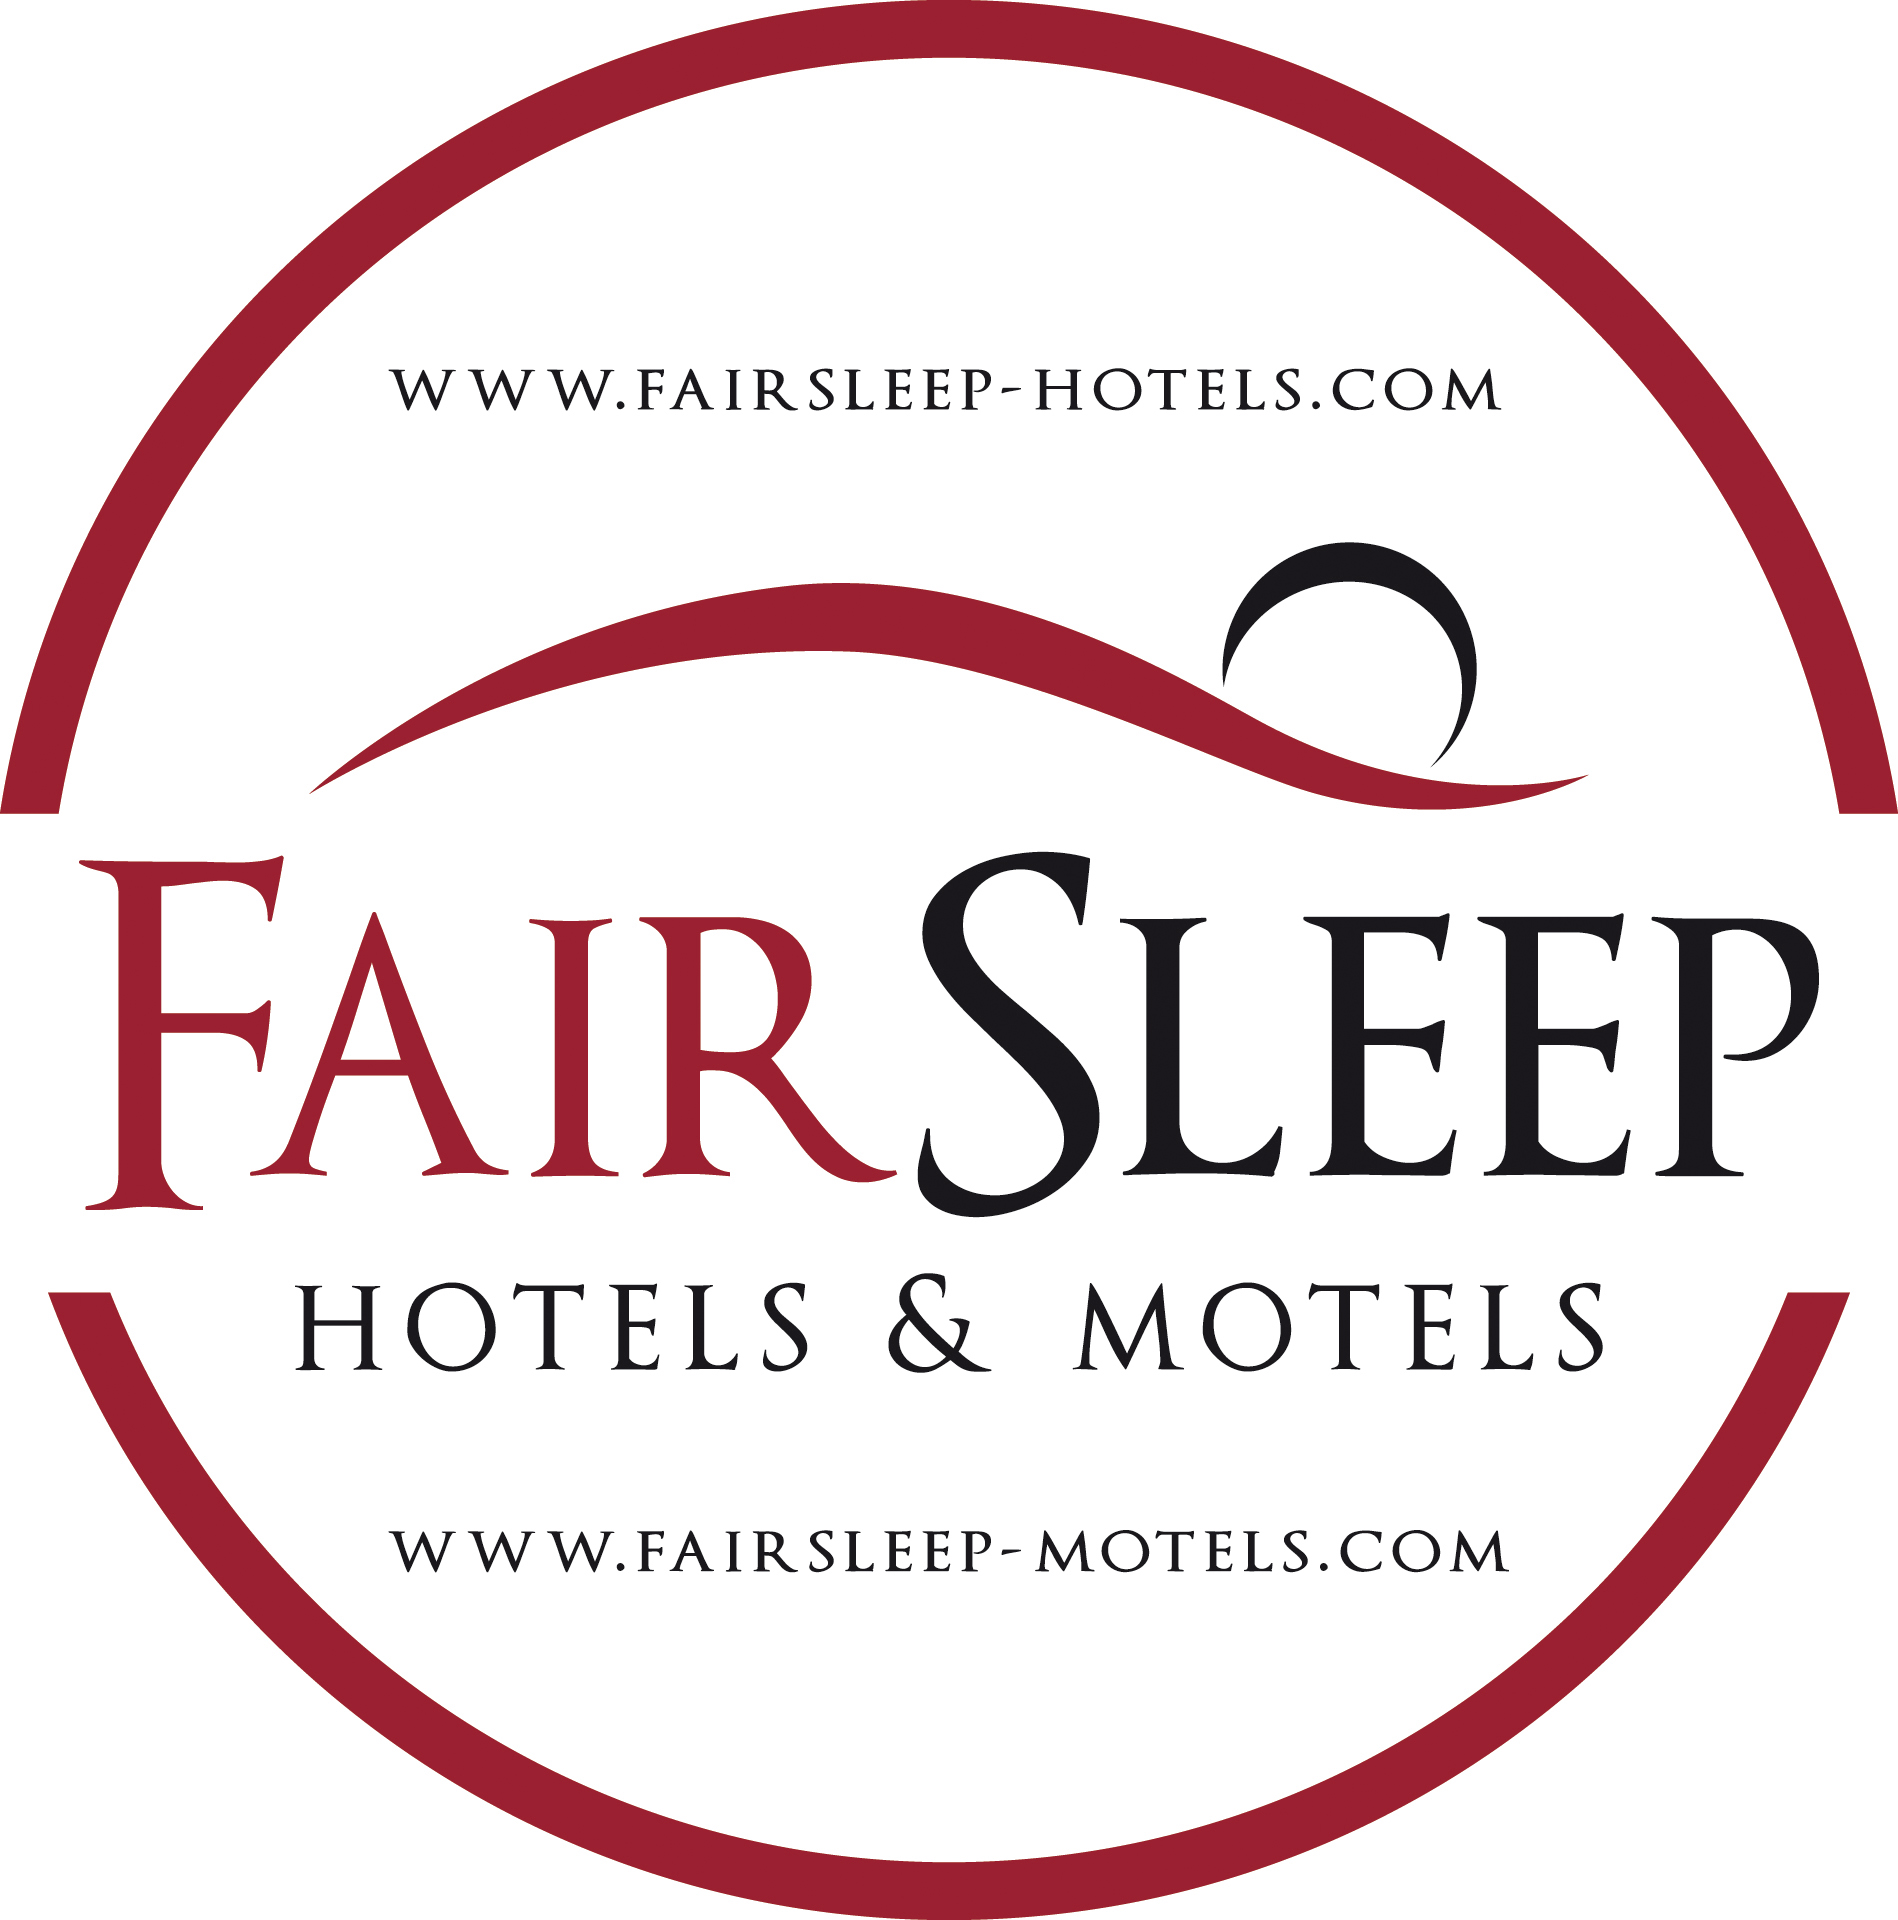 Fair Sleep Hotels & Motels empfiehlt Waterfit